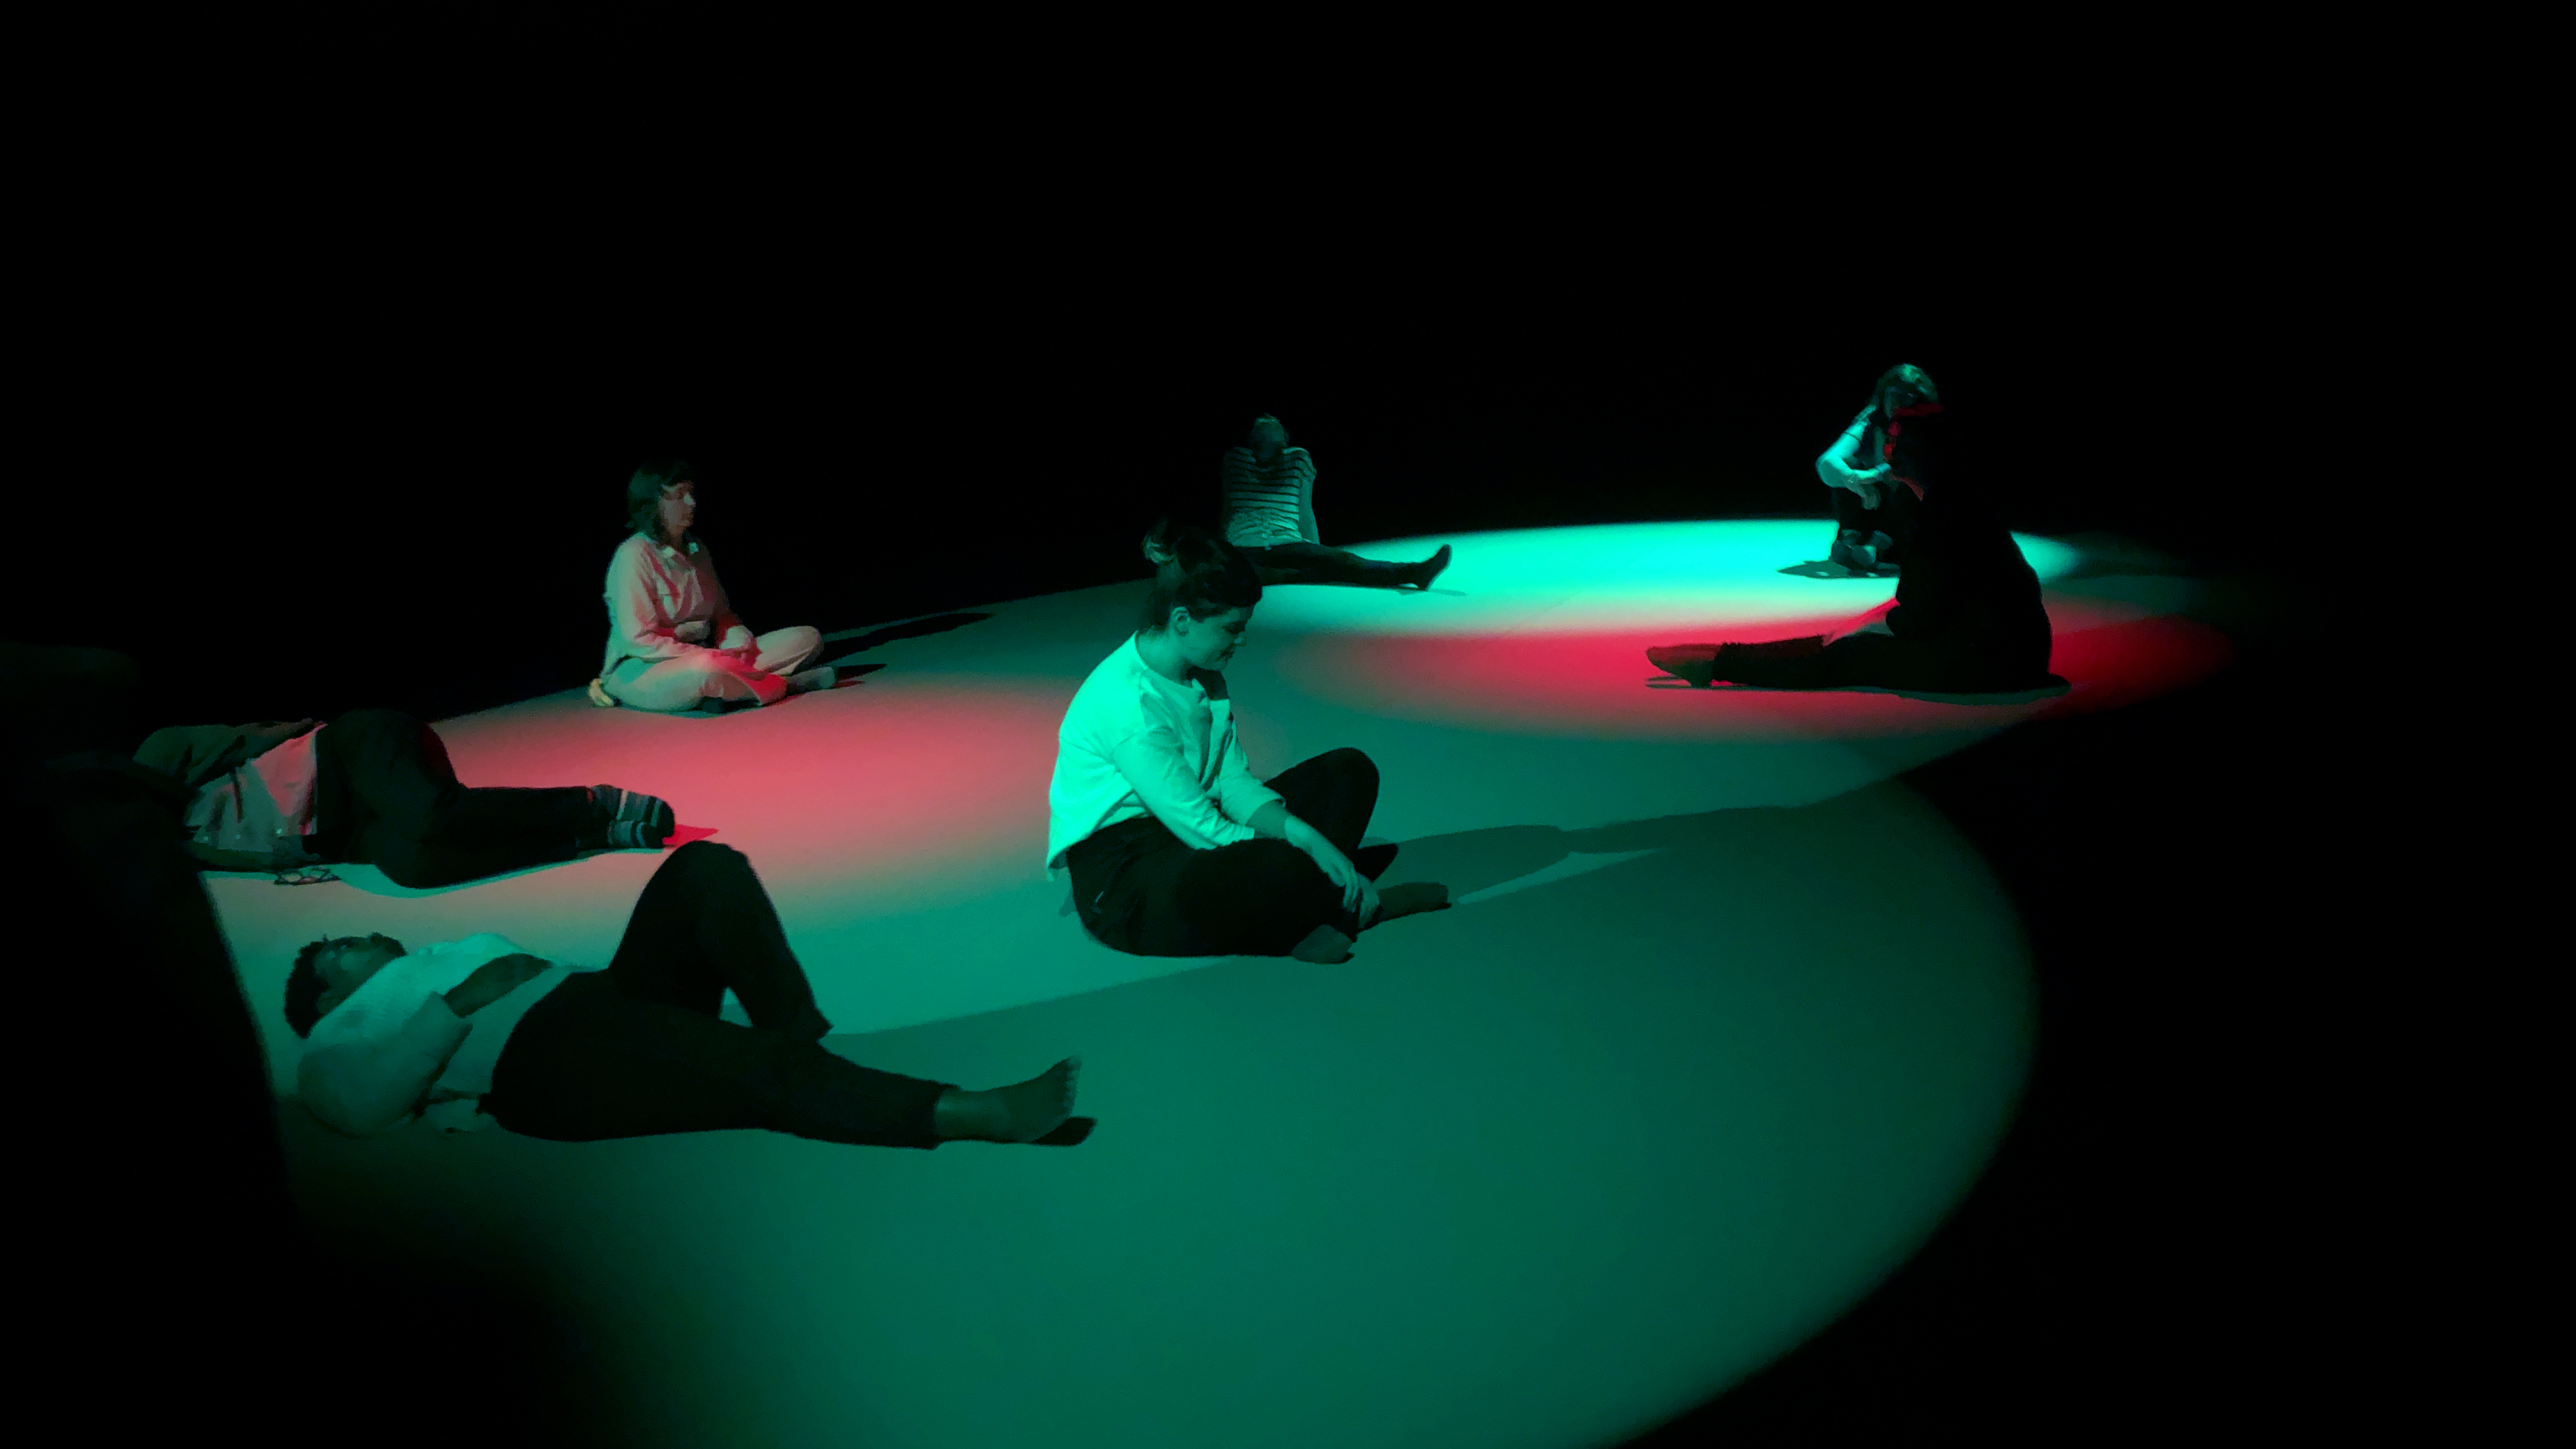 Students and participants sit contemplatively on the floor, which is covered in cyan and red light.